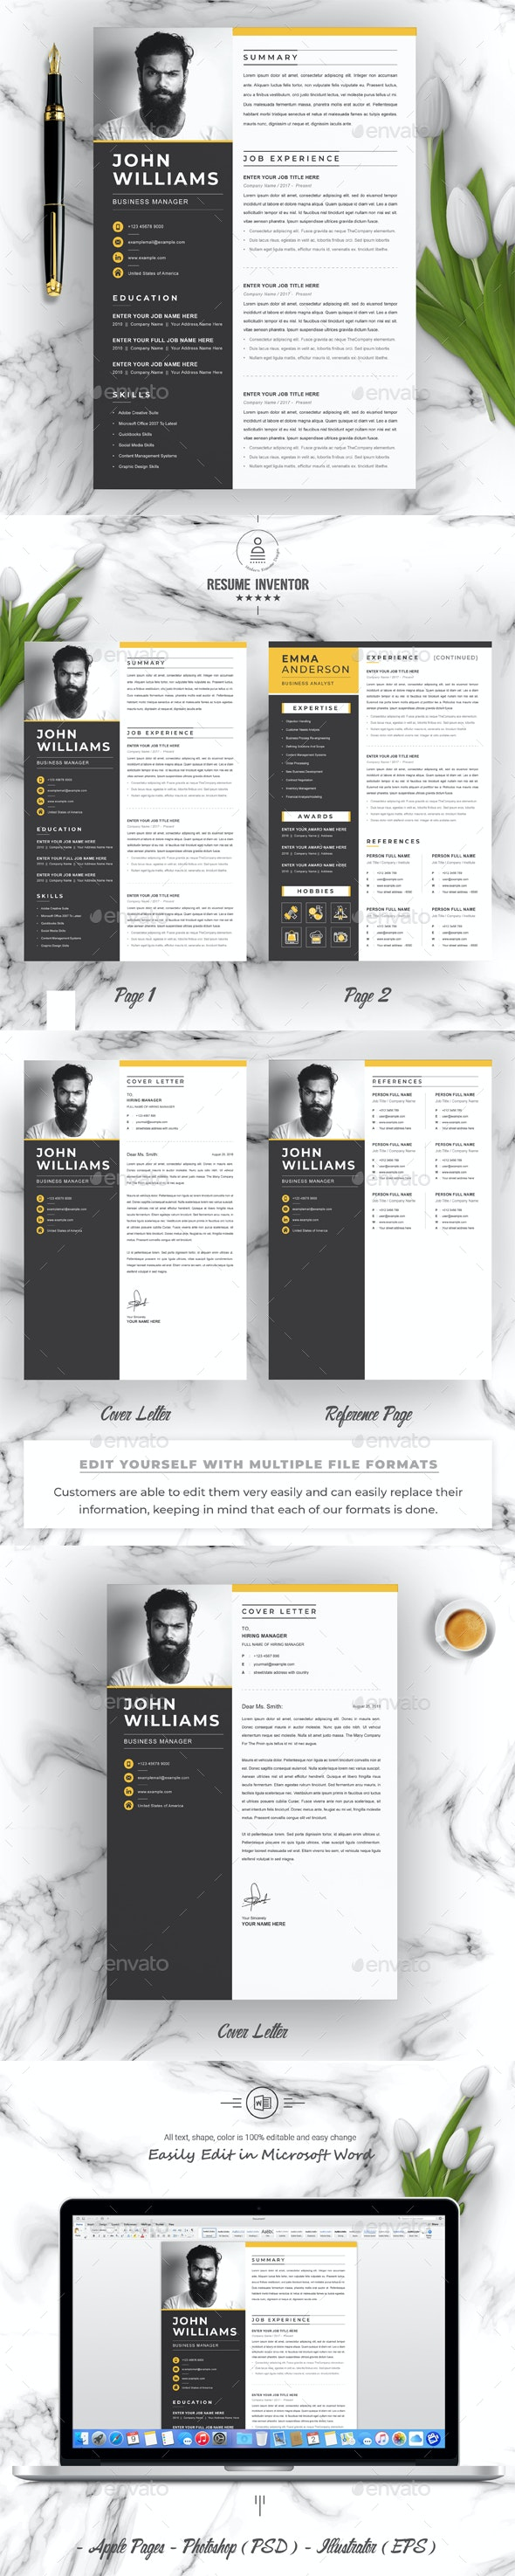 Business Manager Resume - Resumes Stationery